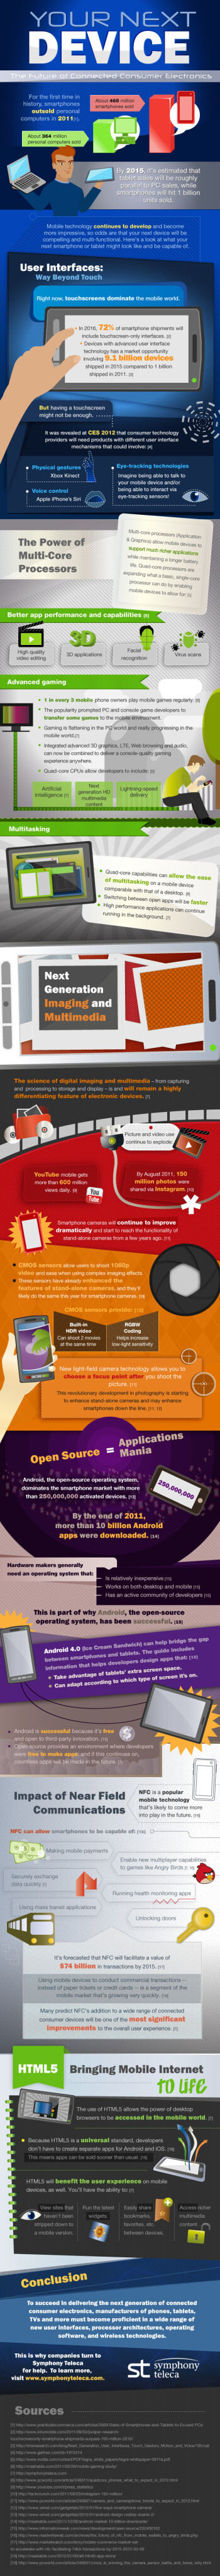 Every feature and technology your next phone will have, summed up into one infographic